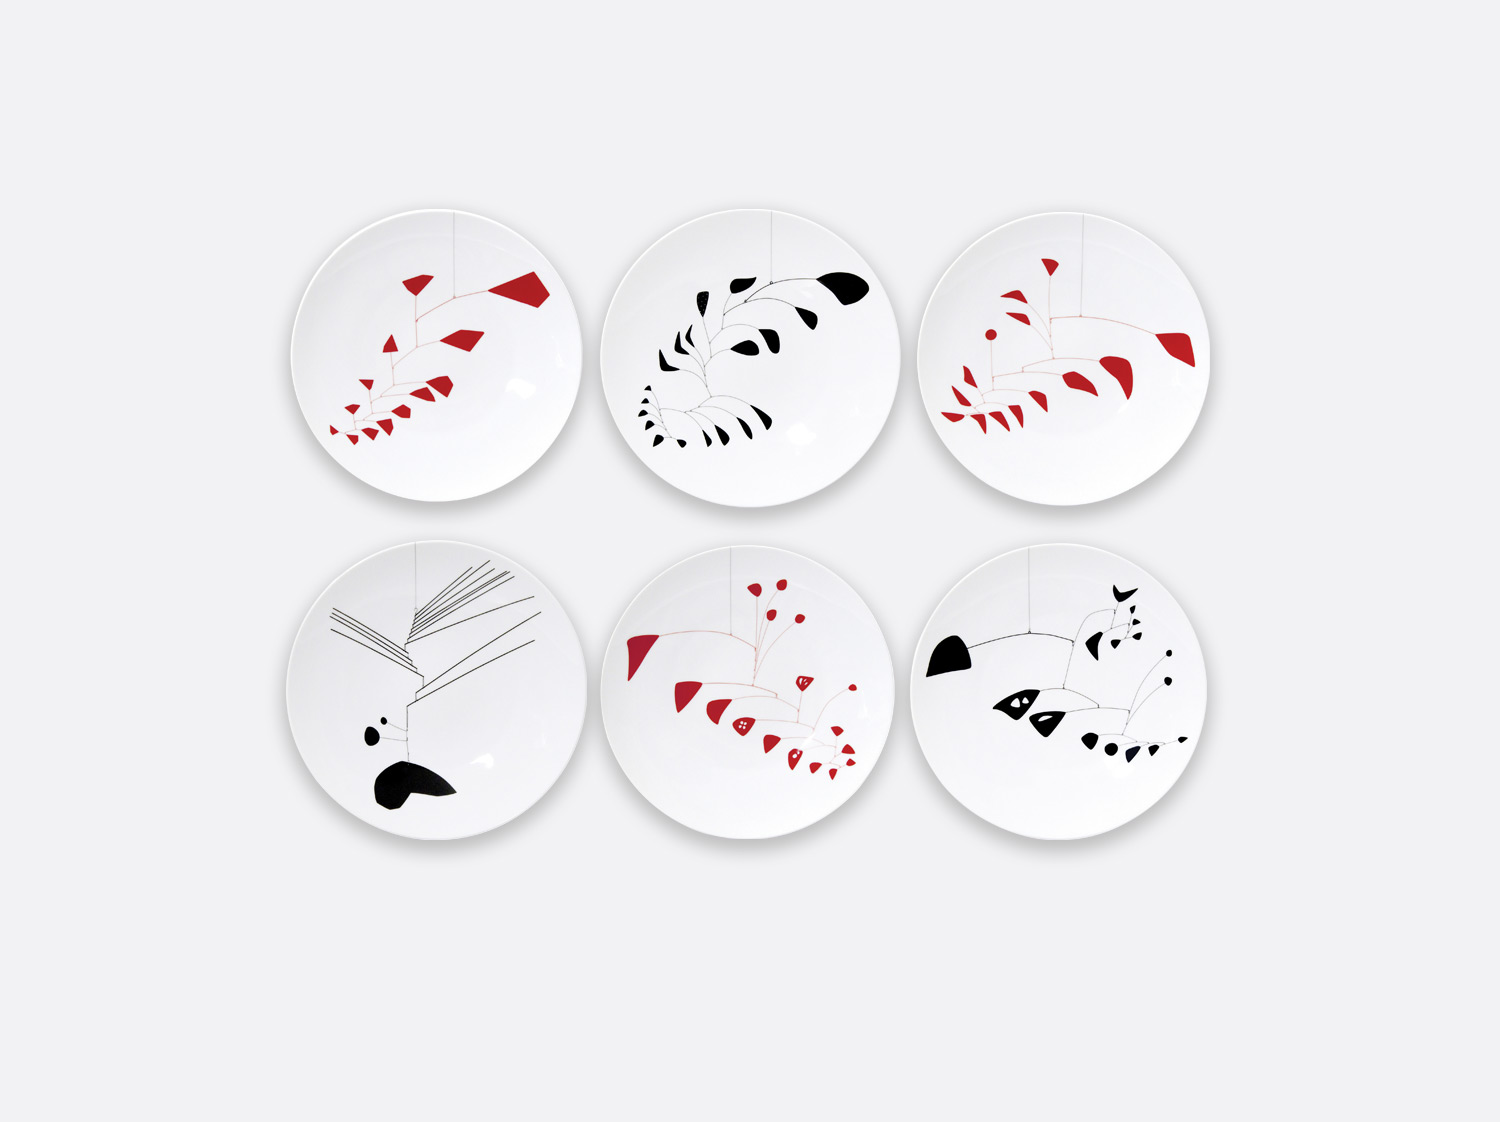 Coffret de 6 assiettes à dîner assorties en porcelaine de la collection Collection Calder Bernardaud